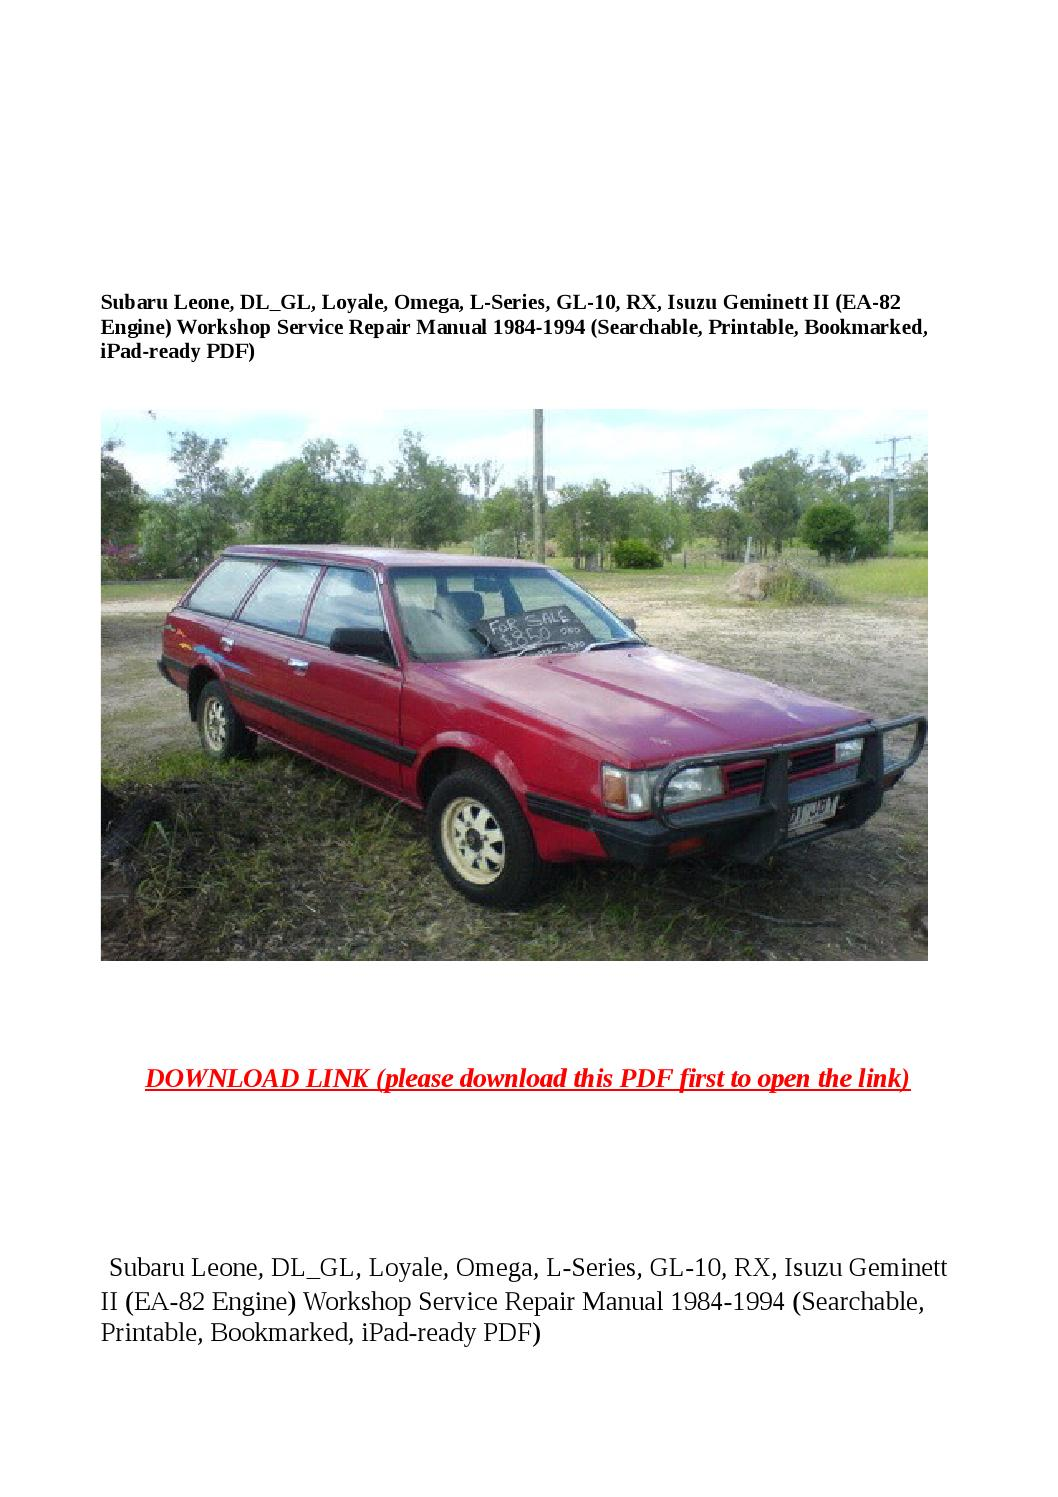 Subaru leone, dl gl, loyale, omega, l series, gl 10, rx, isuzu geminett ii  (ea 82 engine) workshop s by buhbu - issuu